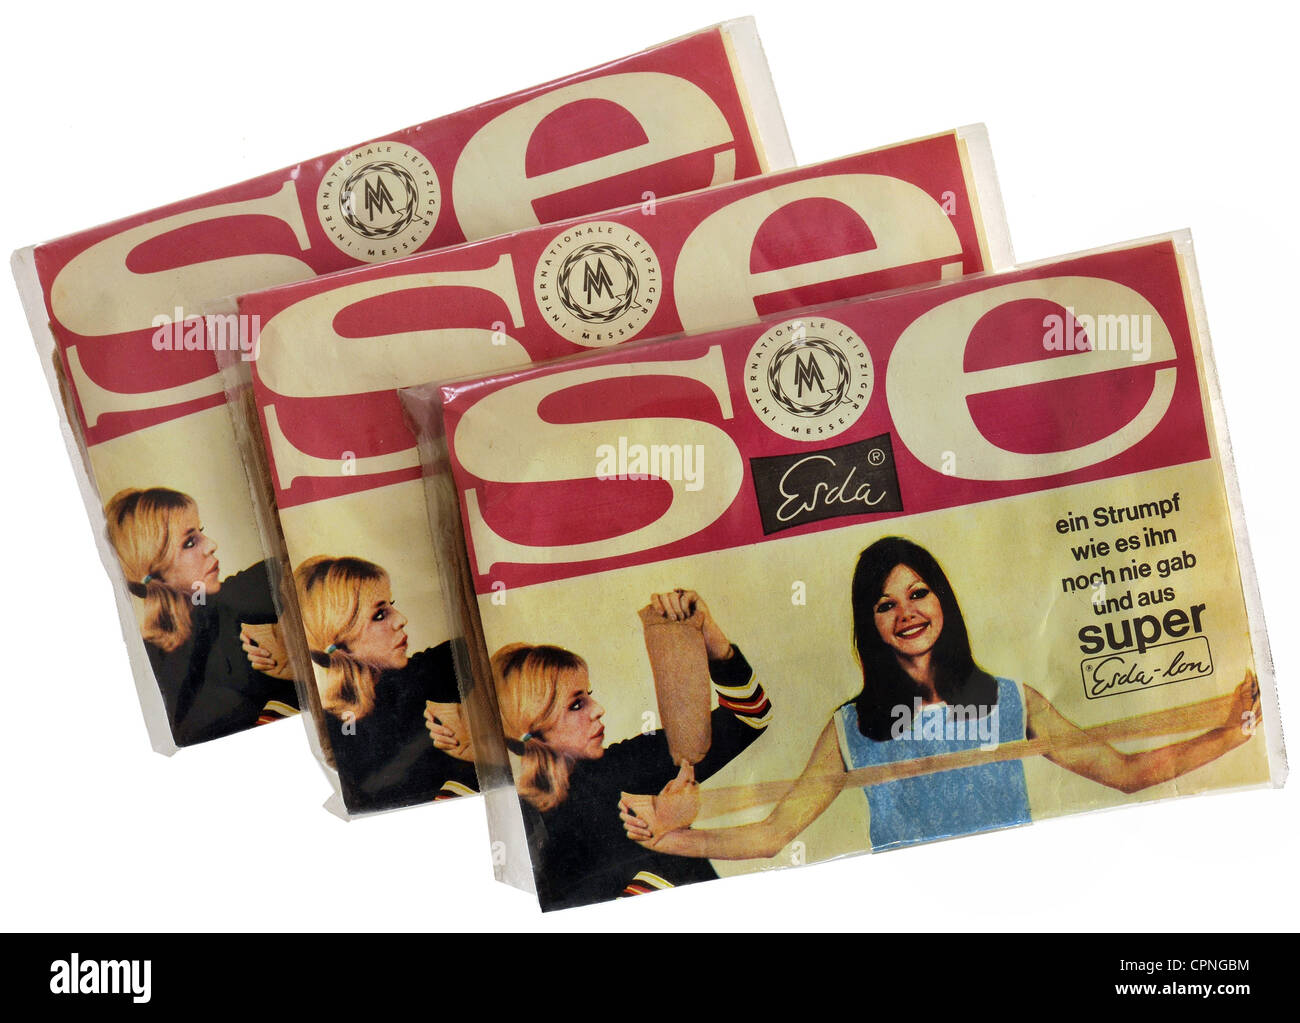 textiles, ladies' stockings, 3 packages, boxed as new, made by: Esda, stocking with 100% polyamide, advertised - Stock Image